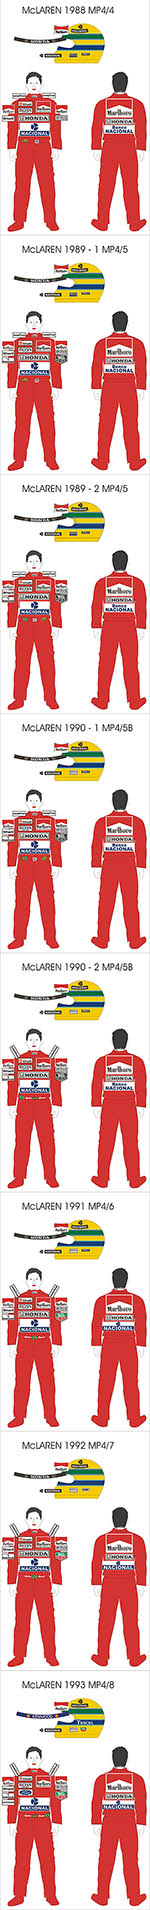 BBK 1/43 SENNA DECAL McLAREN MP4/4 MP4/5 MP4/6 MP4/7 MP4/8